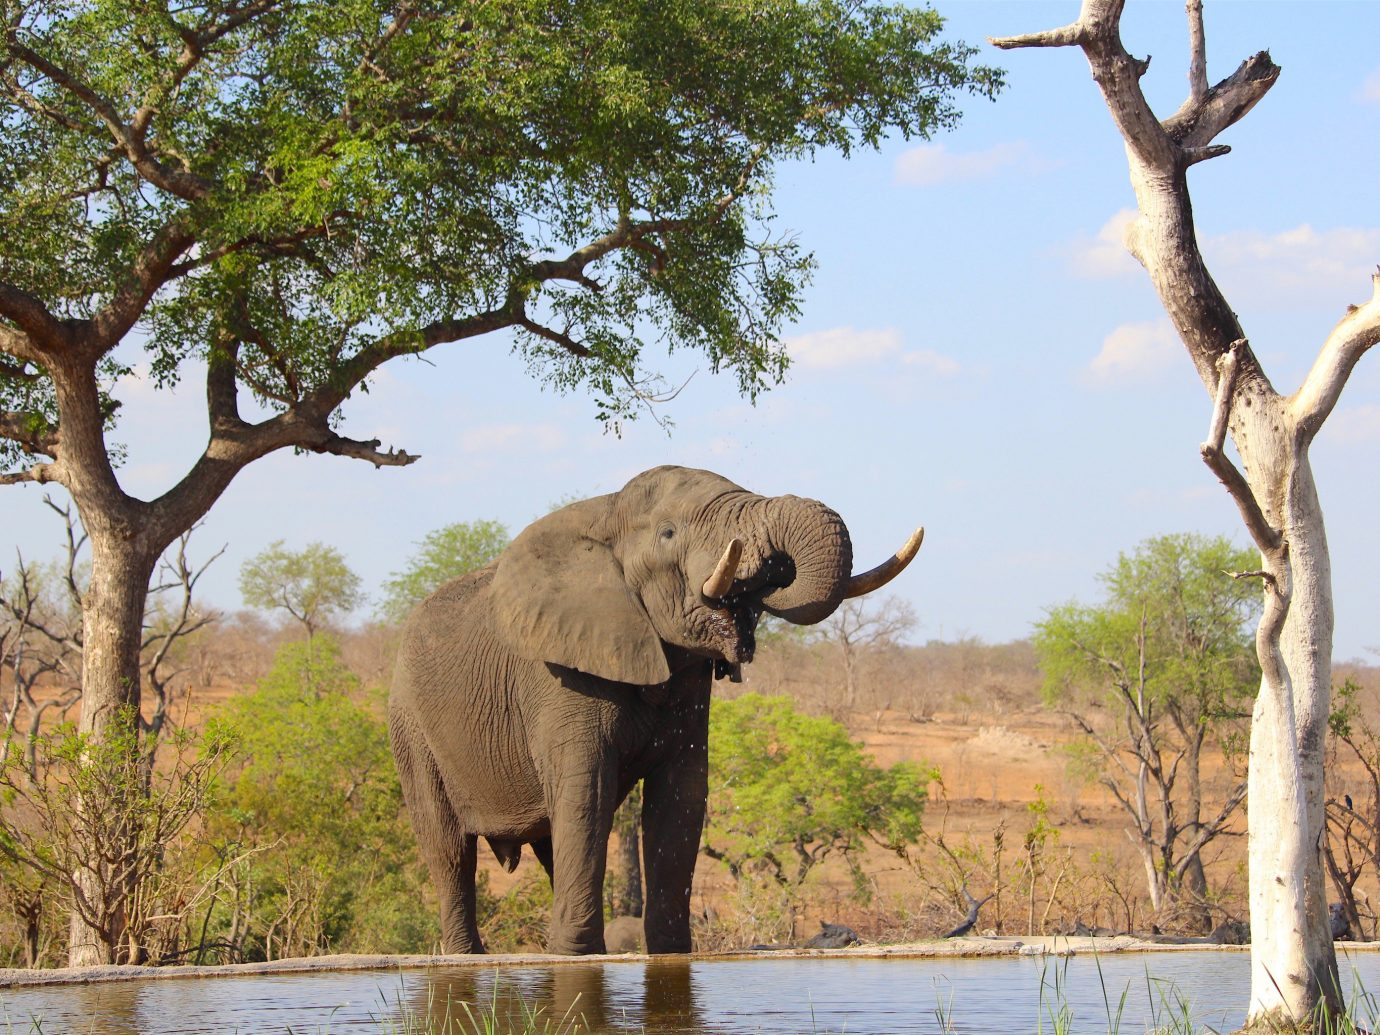 Outdoors + Adventure Safaris Trip Ideas tree elephant outdoor sky animal indian elephant grass mammal Wildlife fauna elephants and mammoths walking standing savanna african elephant Safari outdoor recreation zoo trunk Adventure dirt